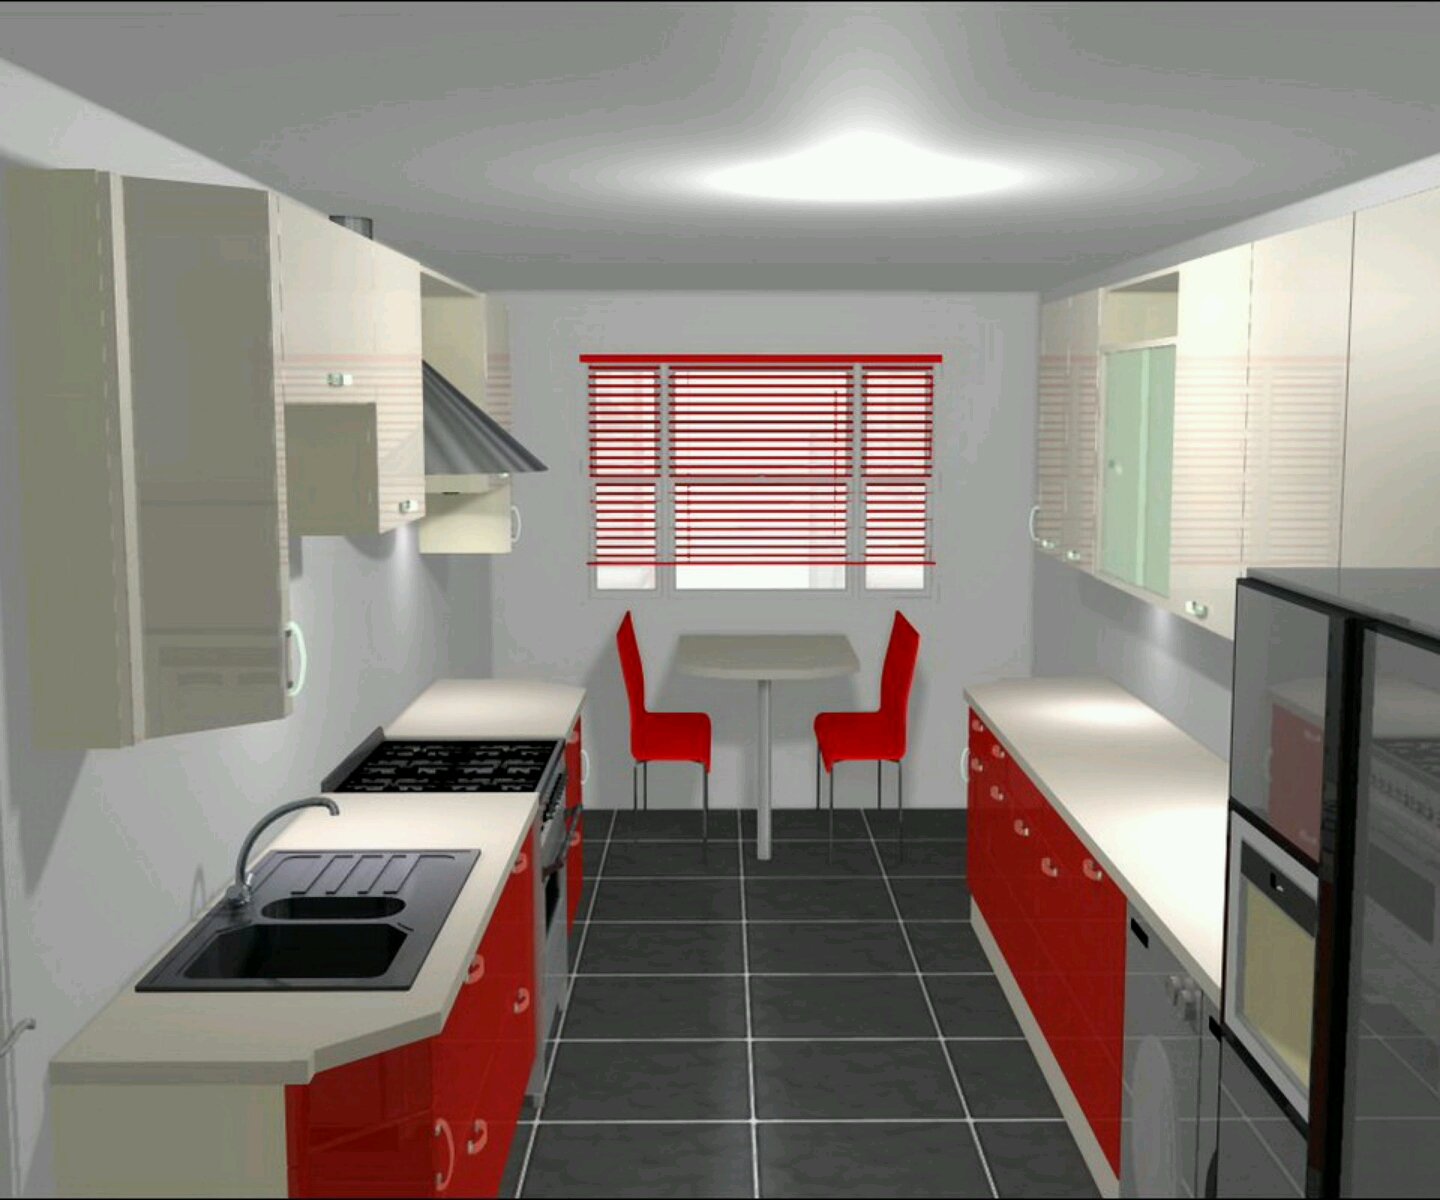 New Home Designs Latest Modern Kitchen Designs Ideas: New Home Designs Latest.: Modern Home Kitchen Cabinet